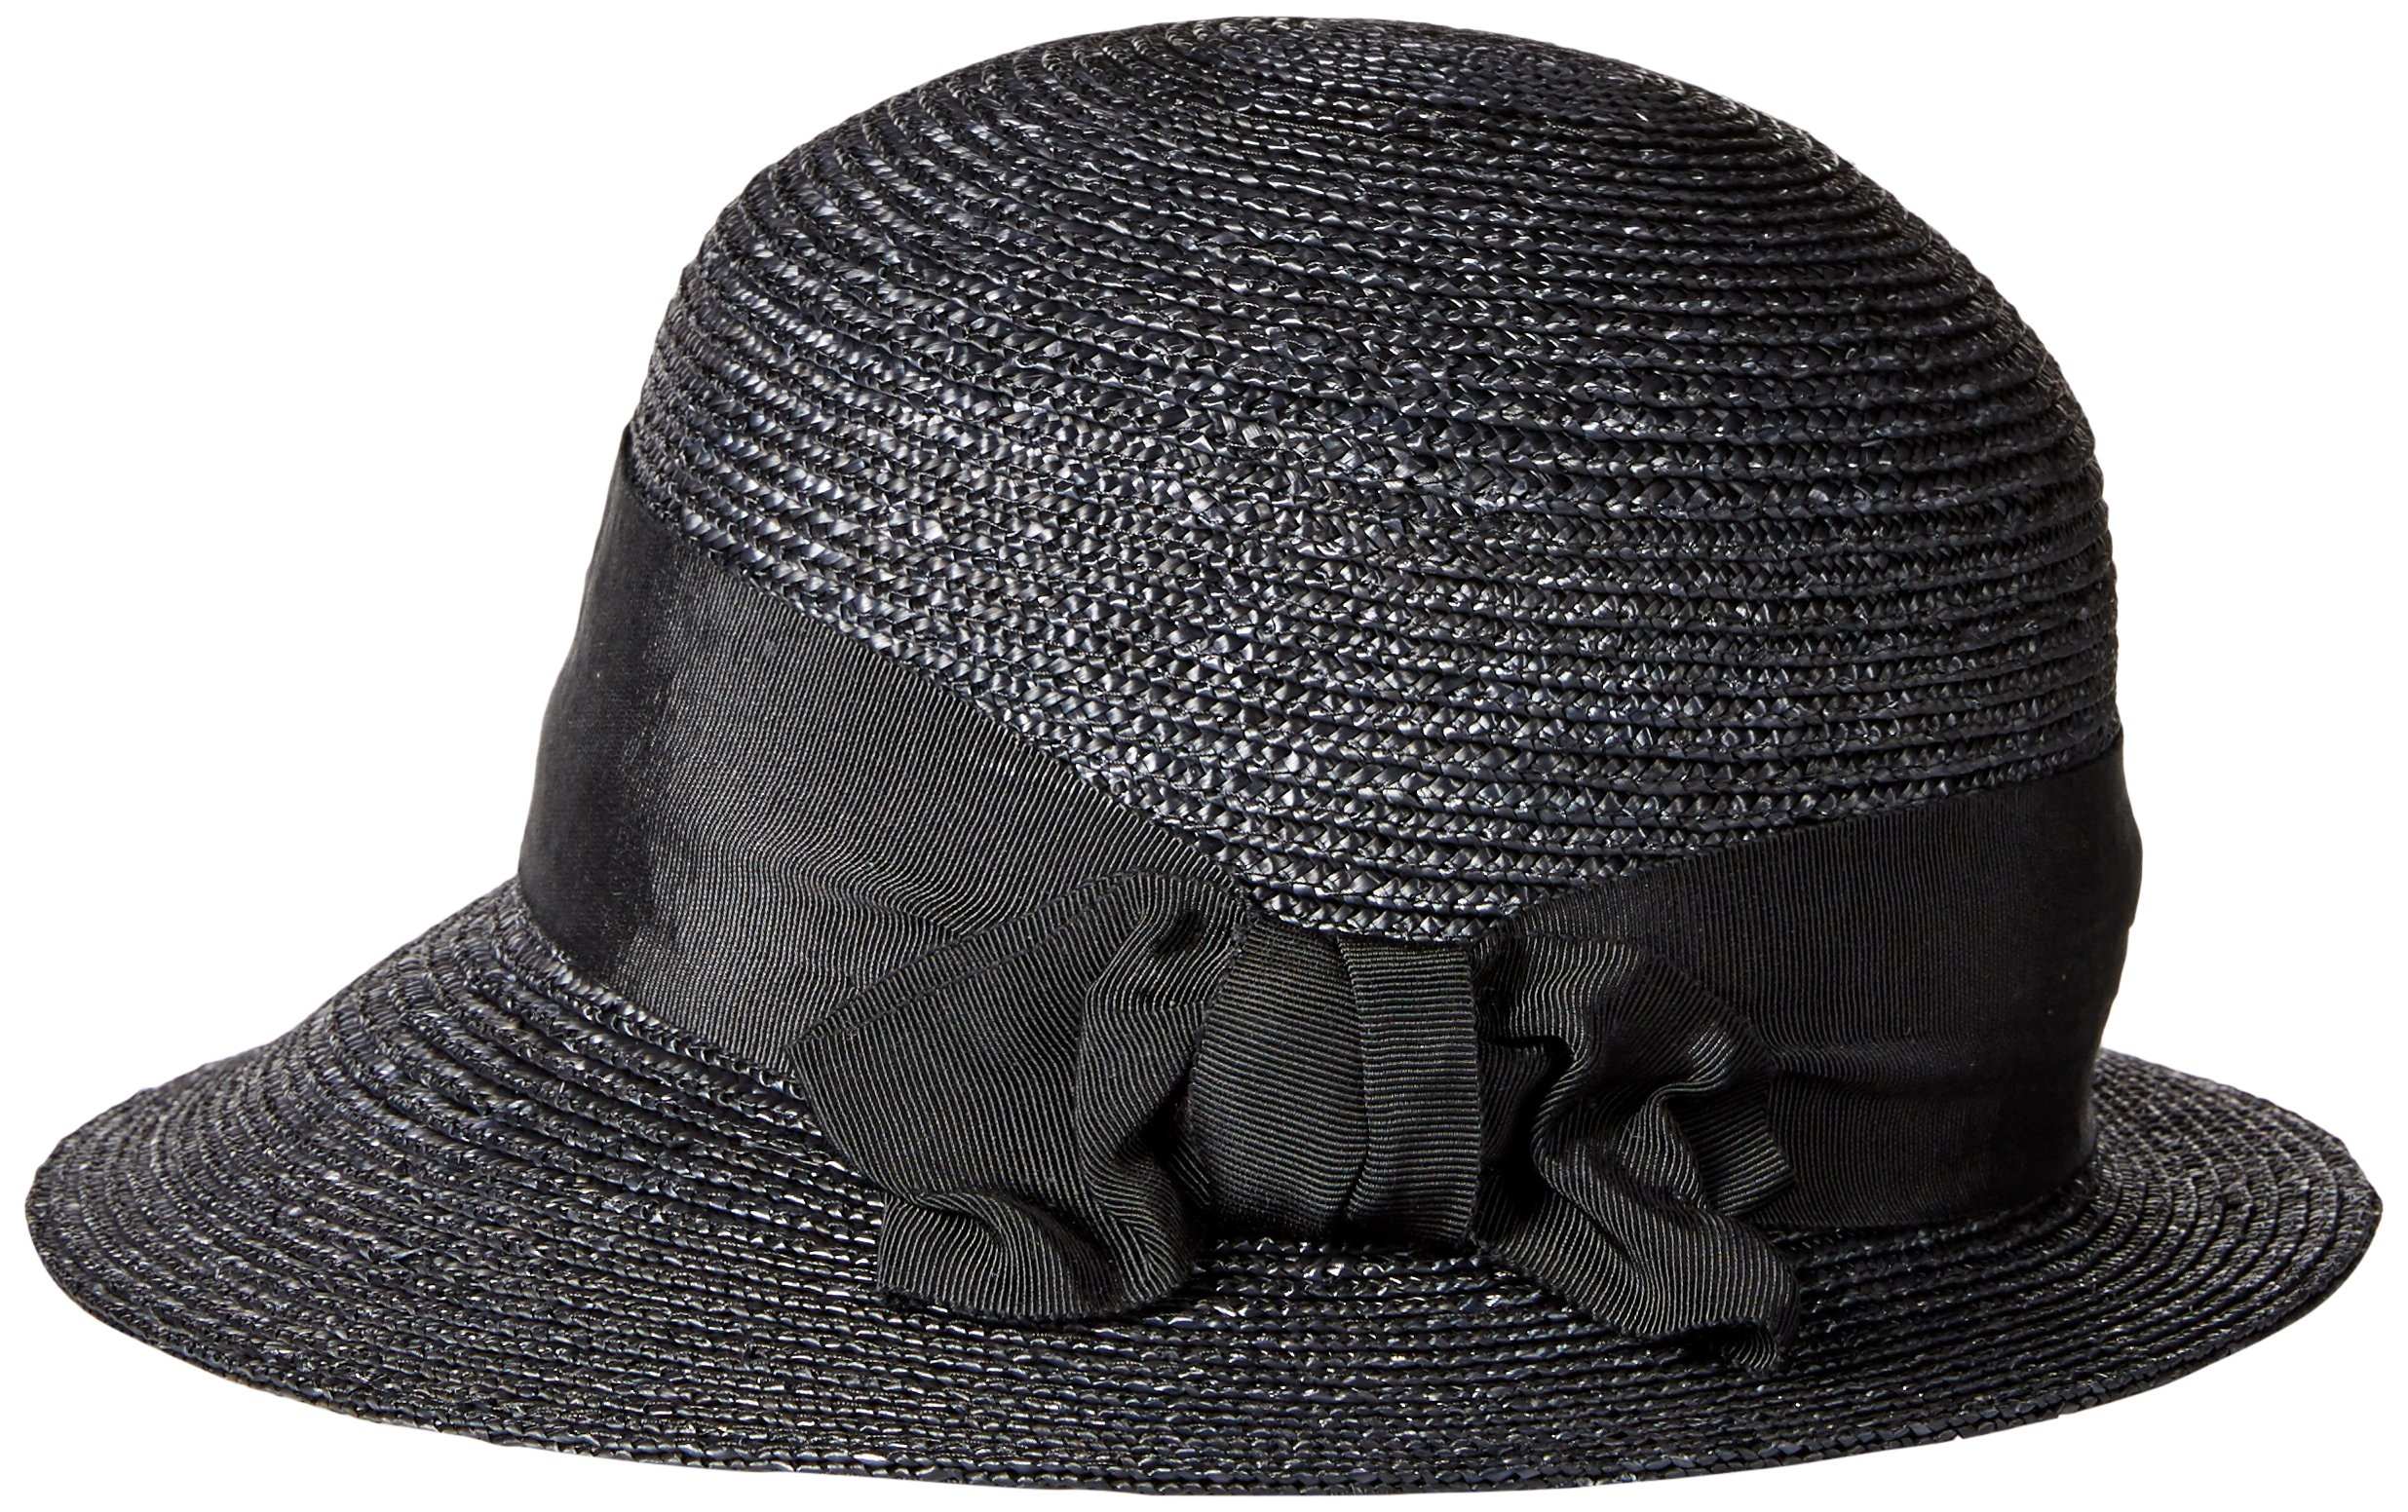 Gottex Women's Darby Fine Milan Straw Packable Sun Hat, Rated UPF 50+ For Max Sun Protection, Black, One Size